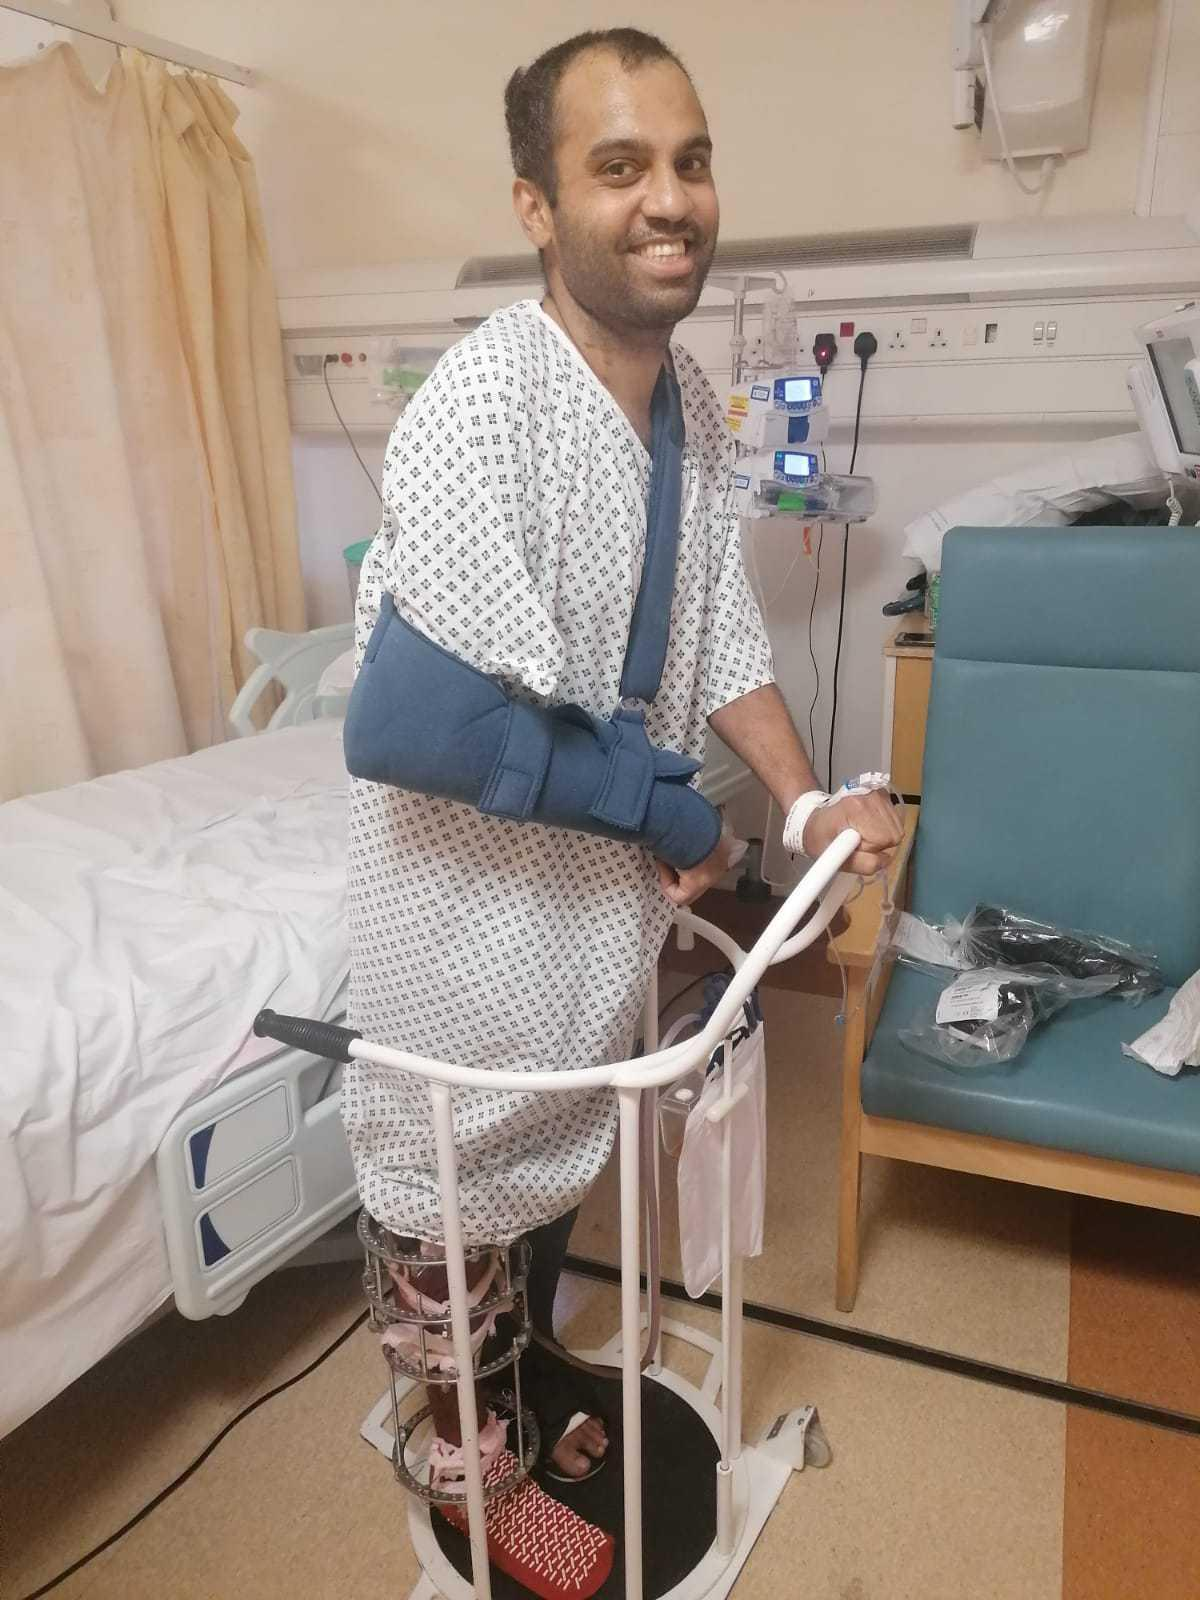 Choudhury was in an induced coma for three weeks and is still recovering from his injuries. (Reach)